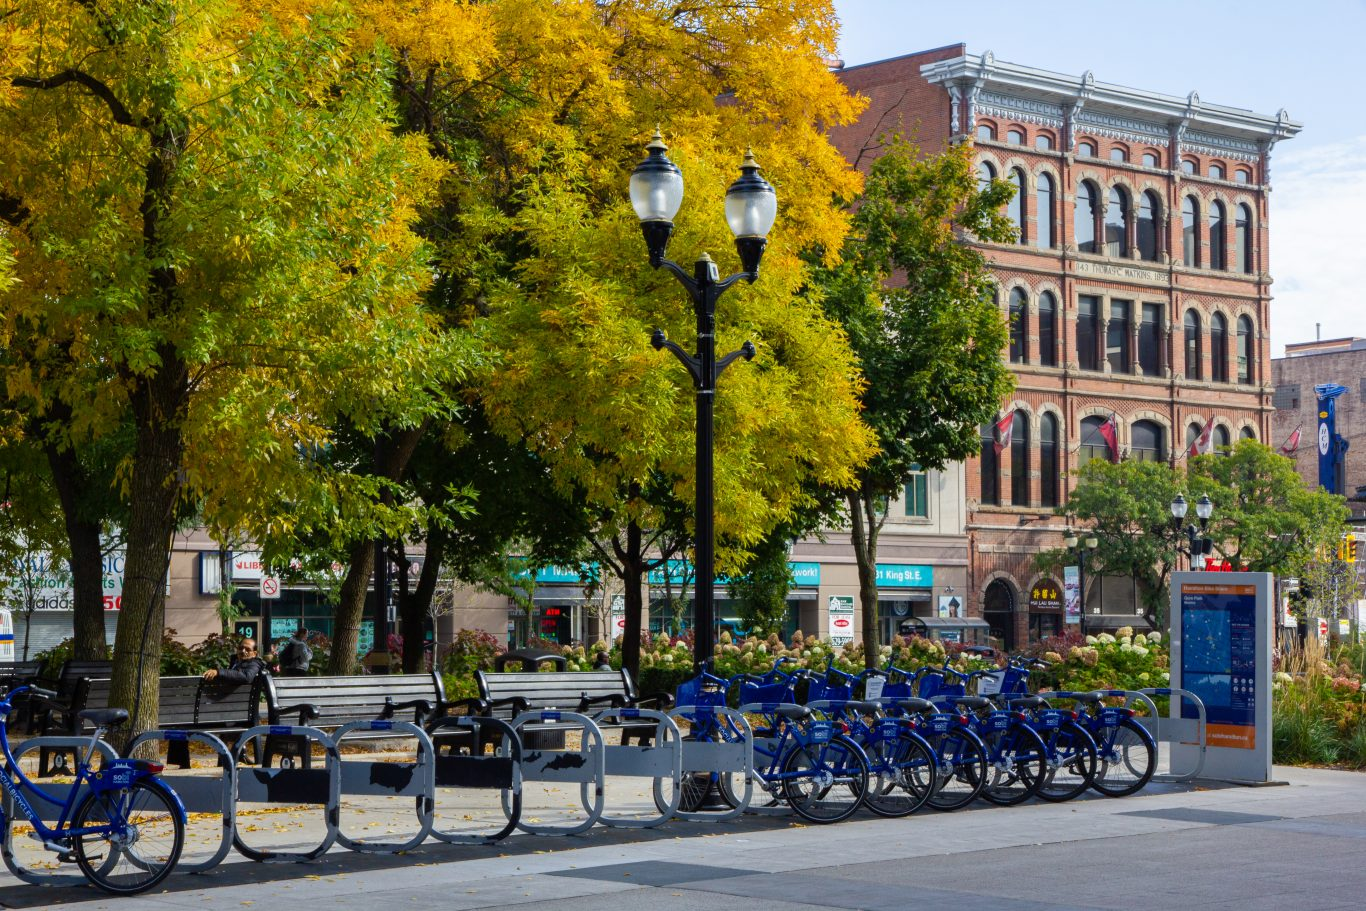 A city street with bicycle racks, trees, and buildings in the background